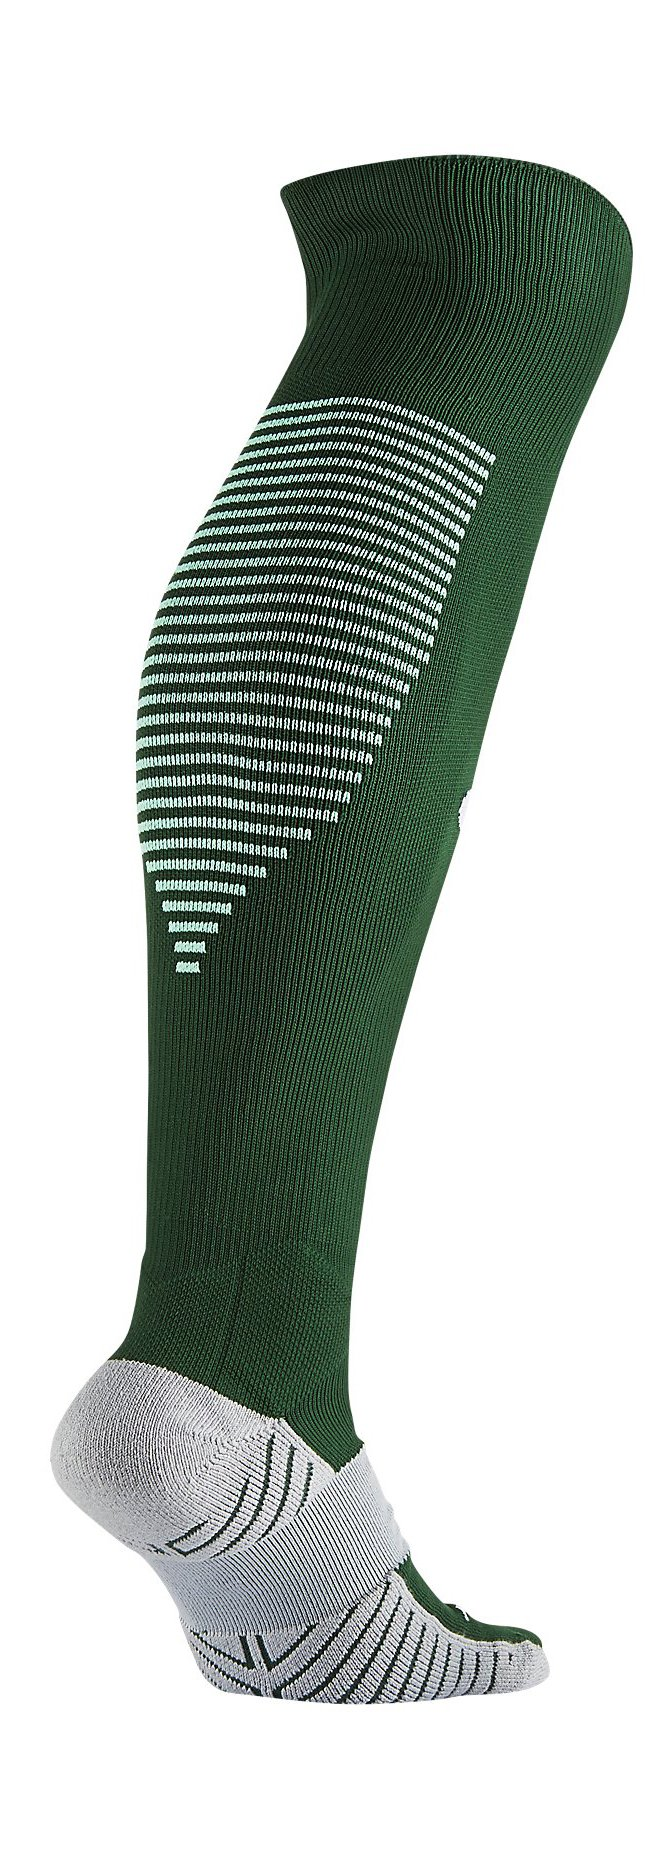 Štulpny Nike 2016 Portugal Stadium Home/Away Football Socks